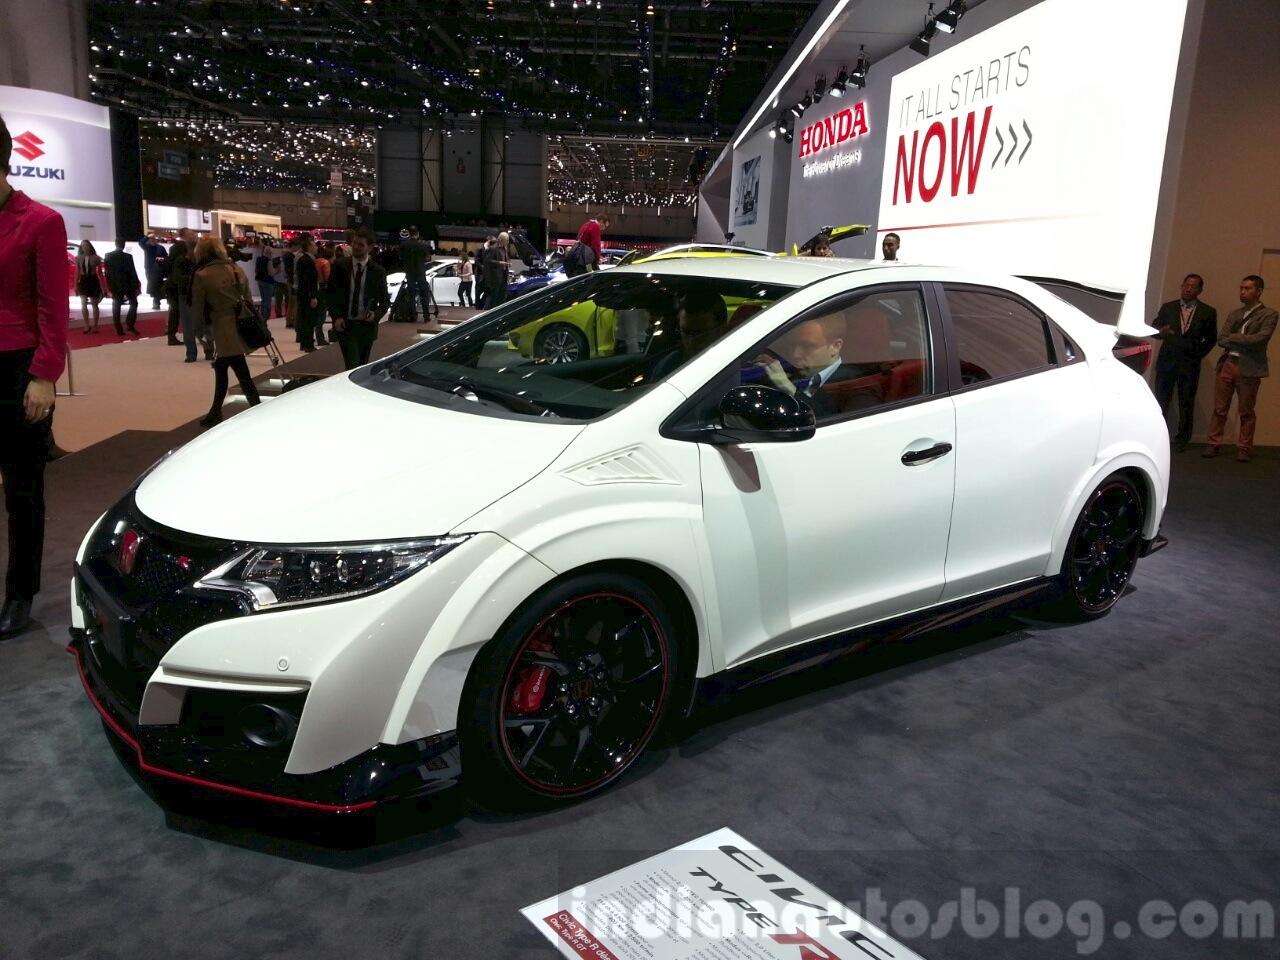 2016 honda civic type r at the 2015 geneva motor show. Black Bedroom Furniture Sets. Home Design Ideas